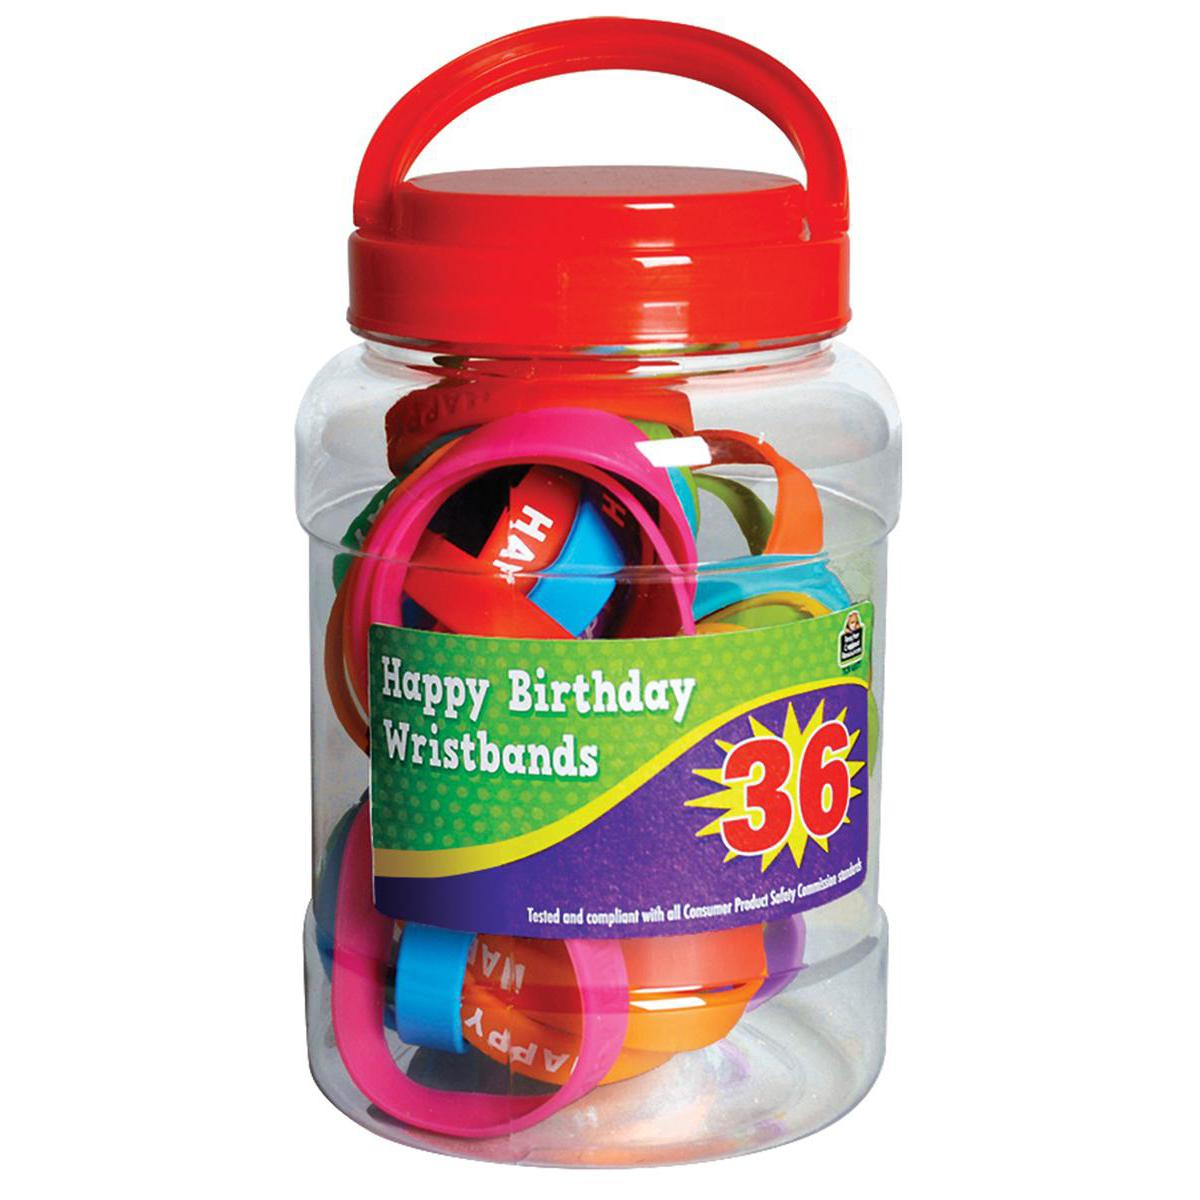 Happy Birthday Wristband Jar